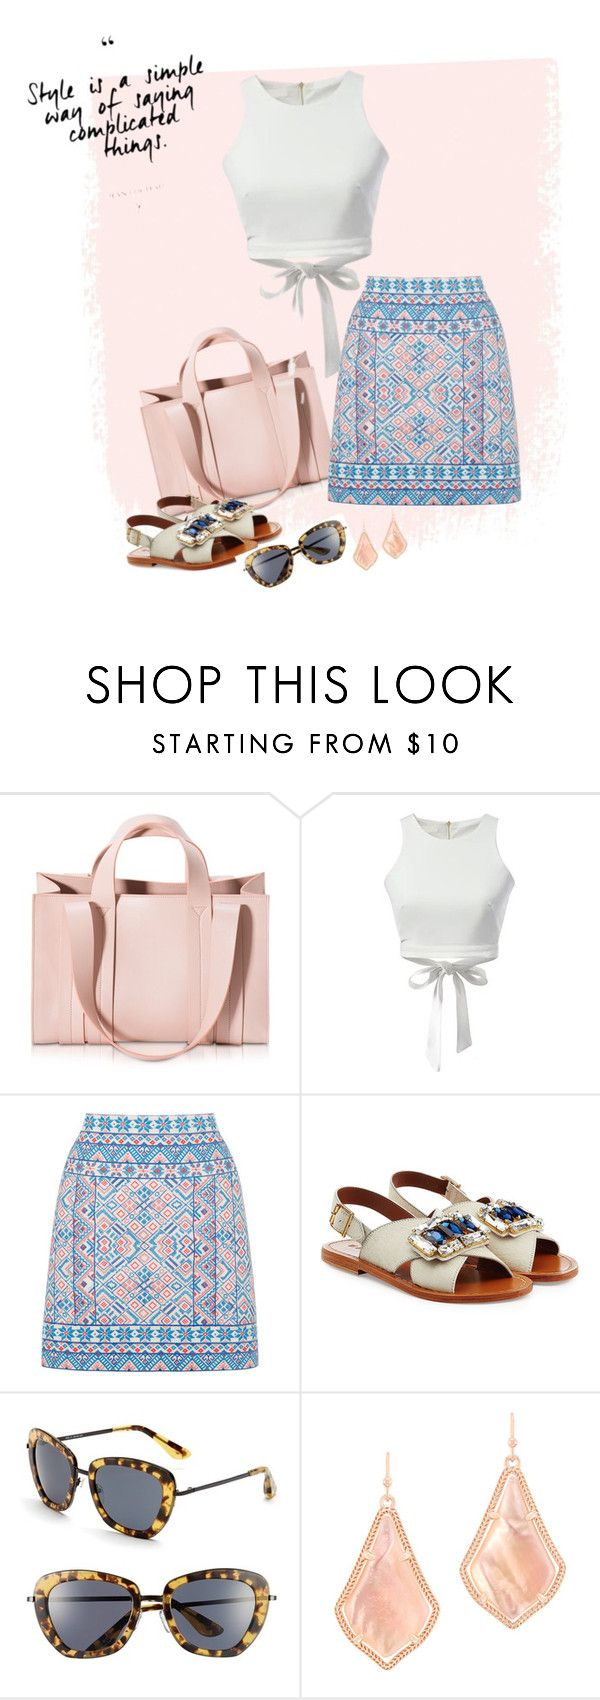 """Untitled #87"" by blackparrott ❤ liked on Polyvore featuring Corto Moltedo, Oasis, Marni, Isaac Mizrahi, Kendra Scott, under50 and skirtunder50"